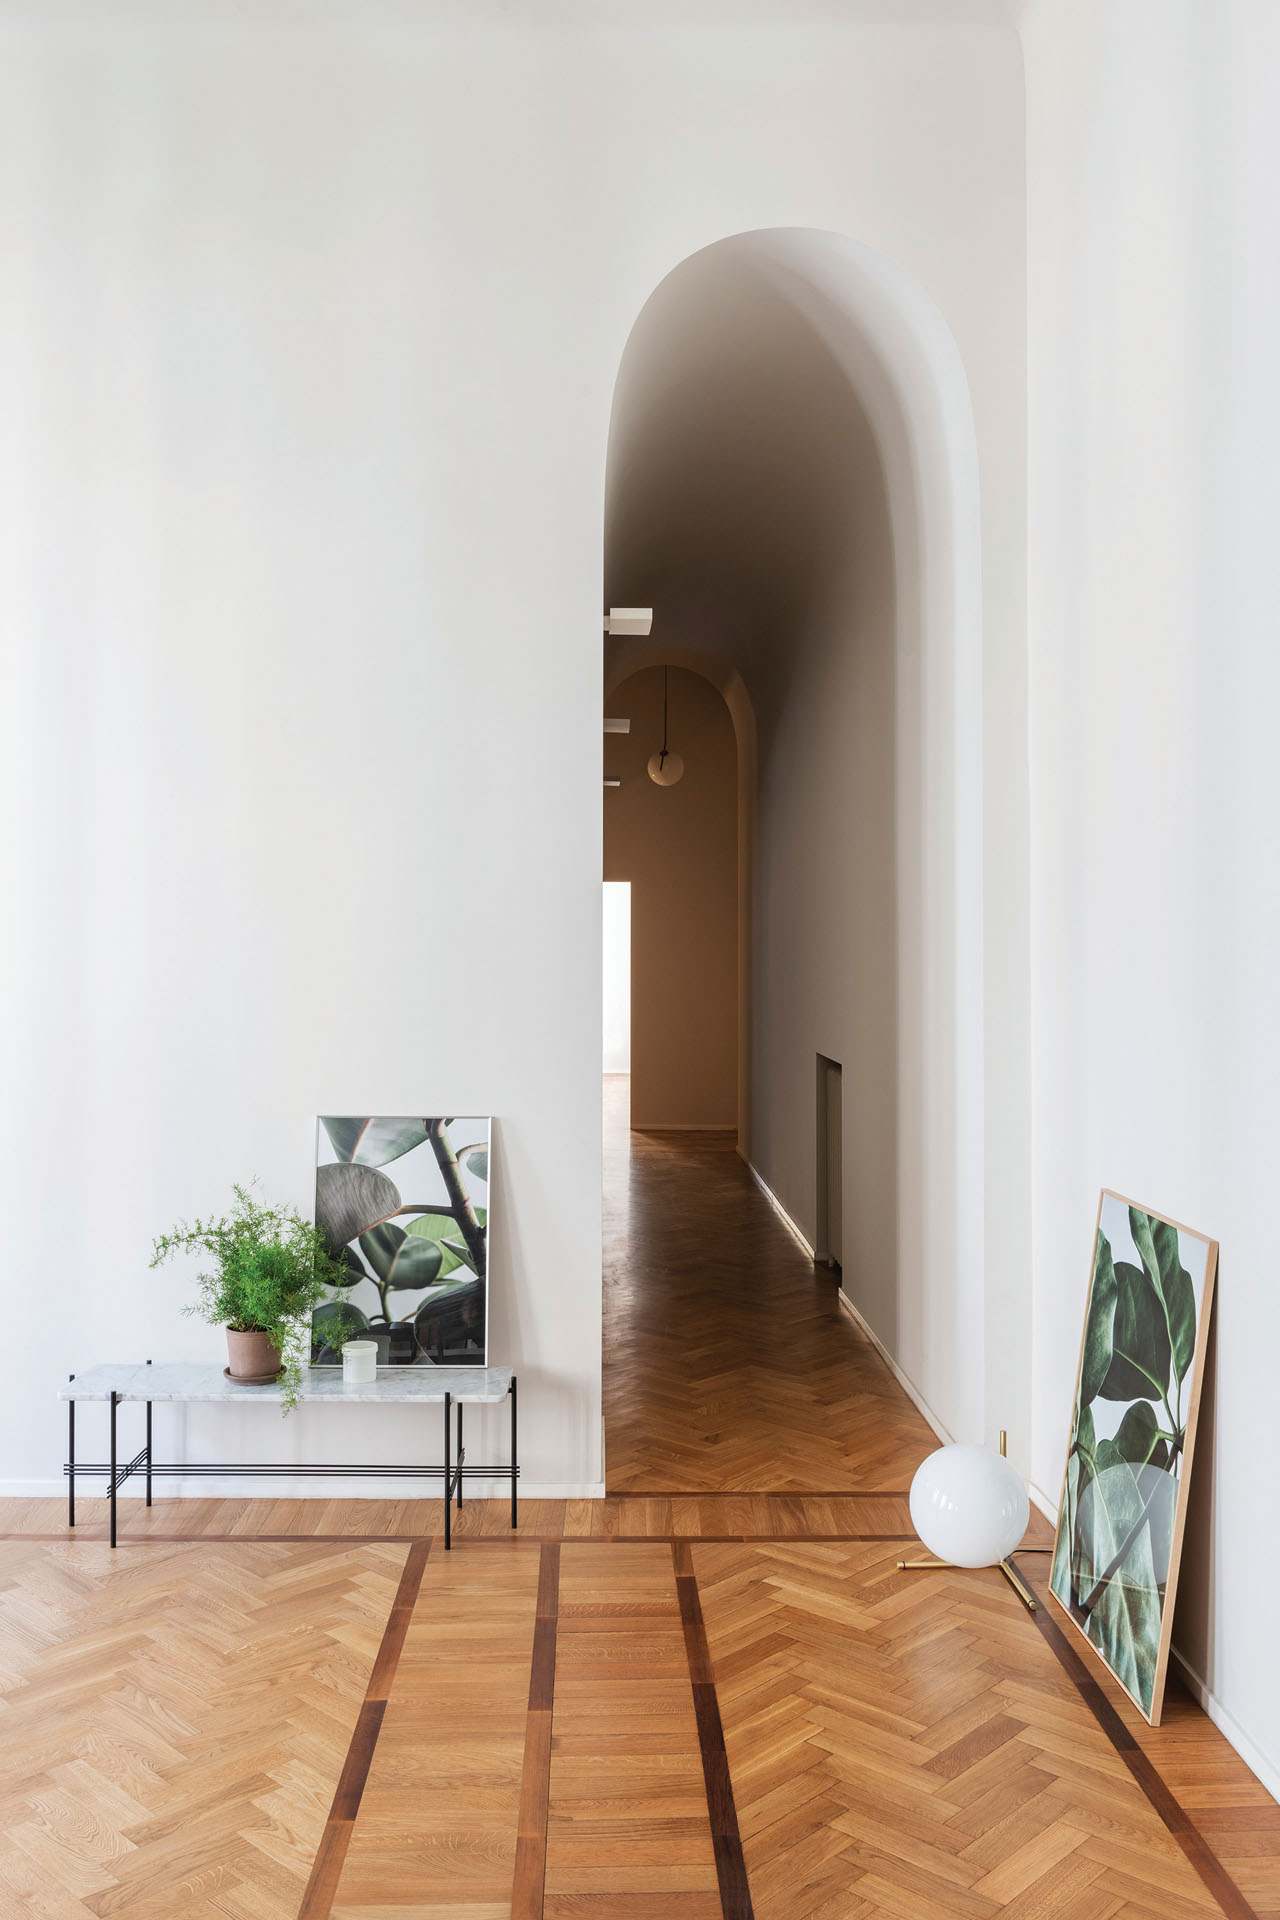 Studio Wok Milan apartment